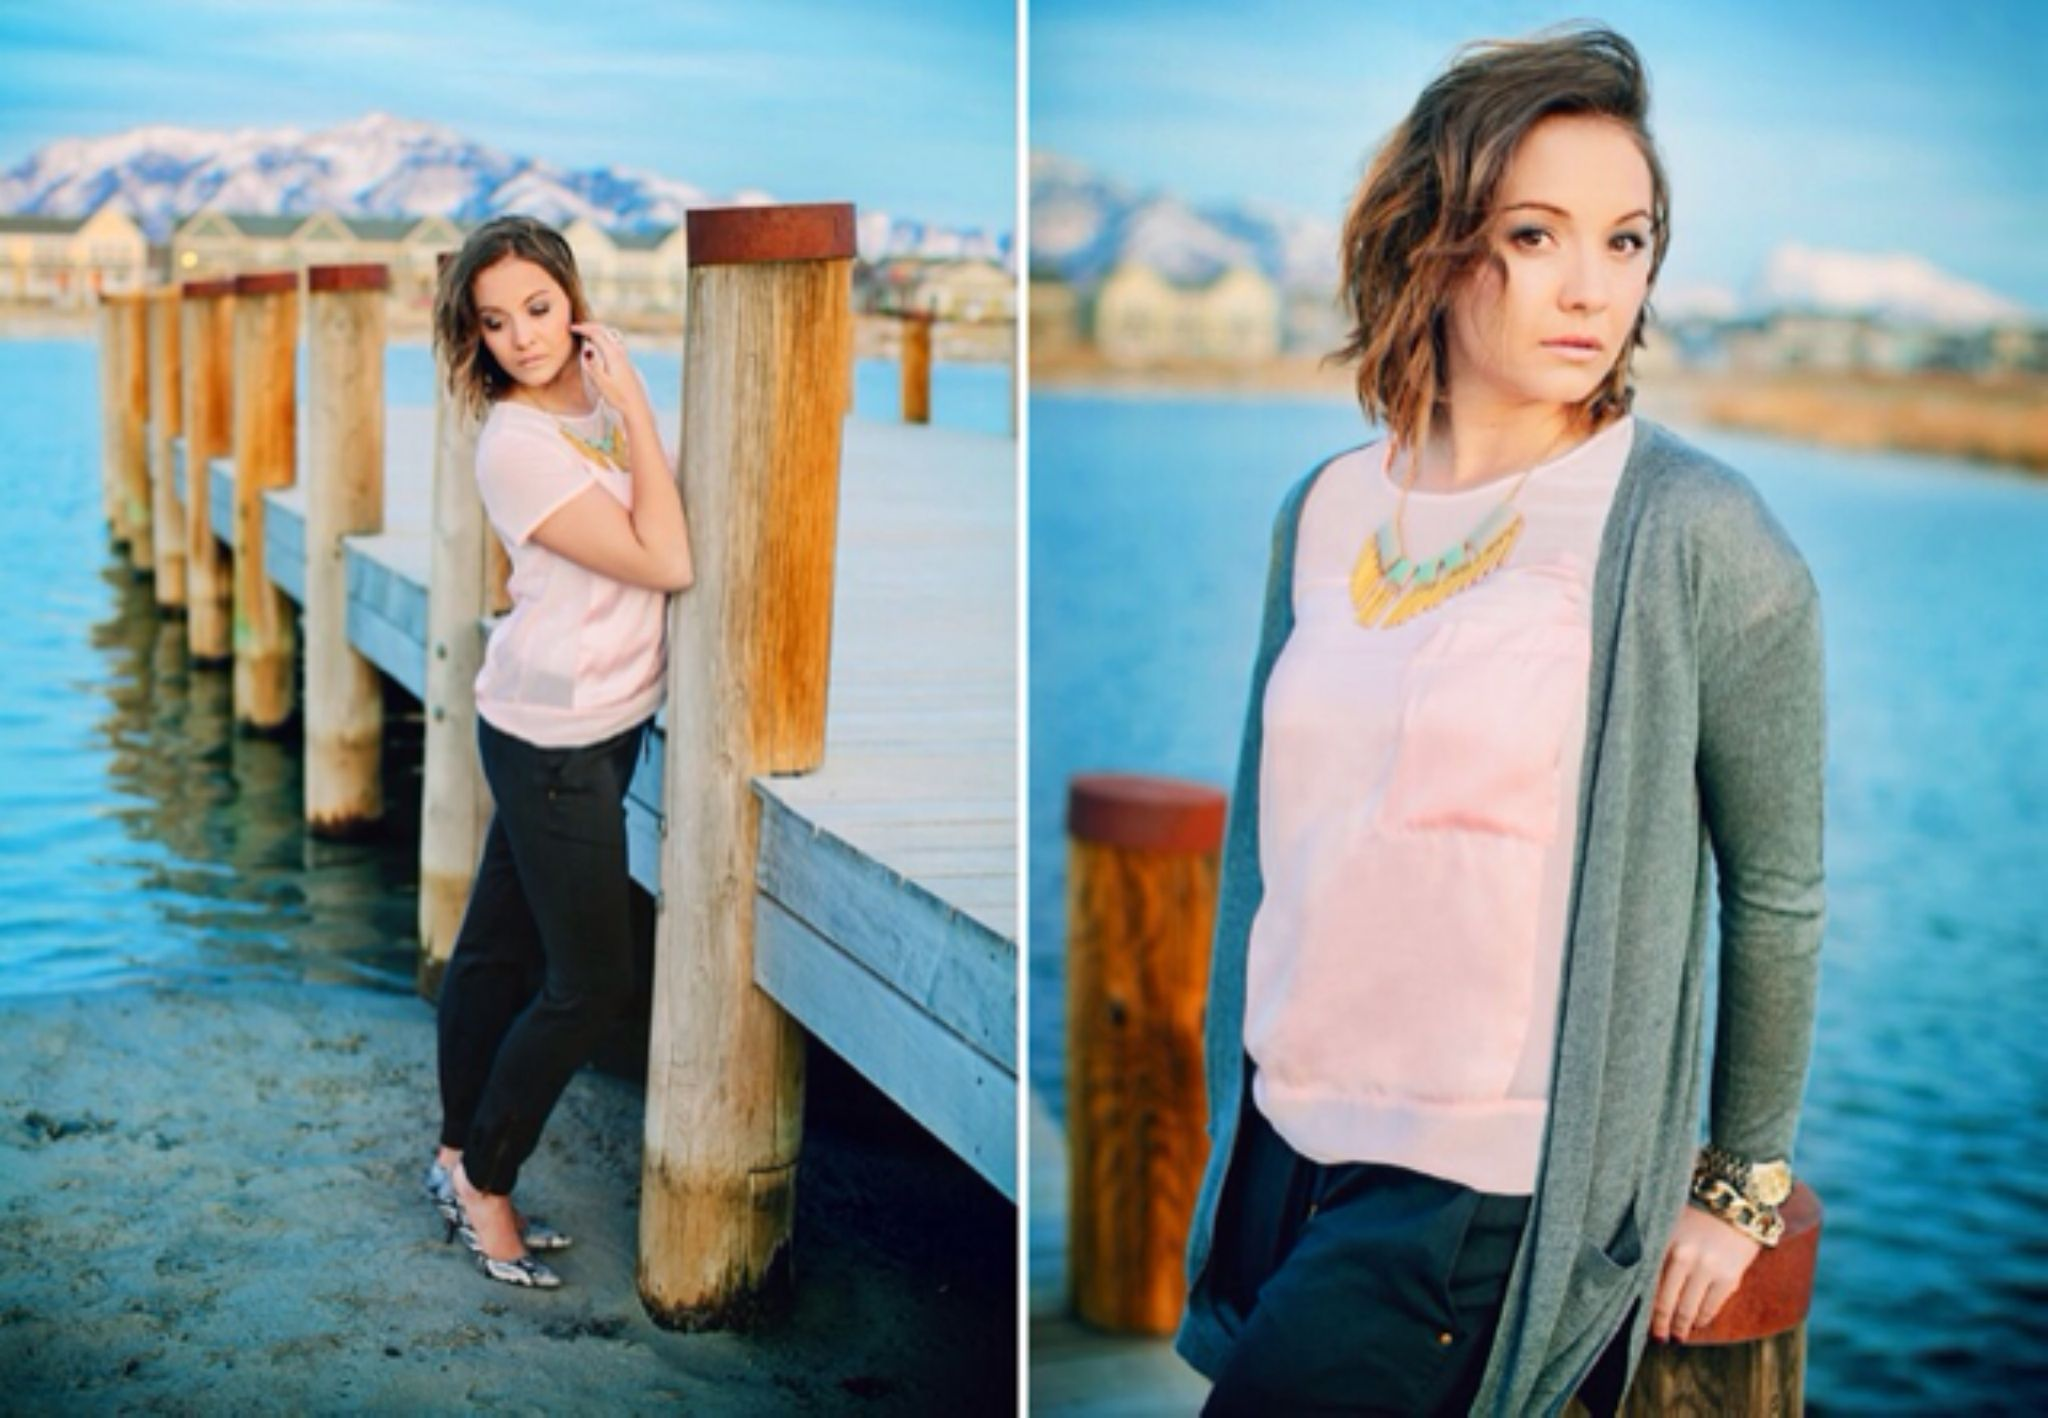 IMG_5176 by madmariephotography